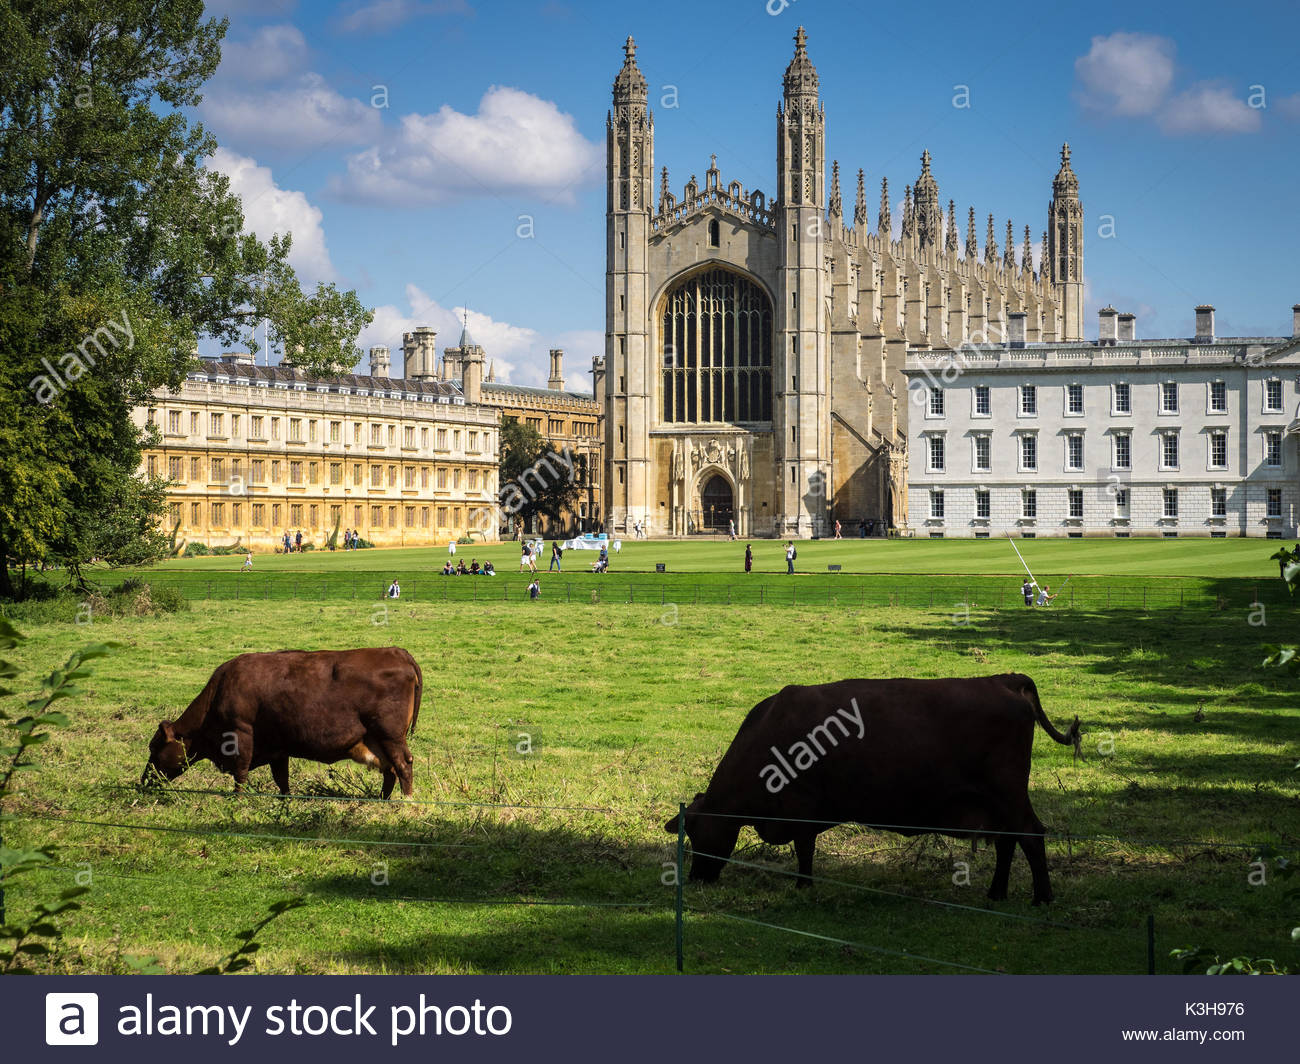 Cows graze on the Backs in front of Kings College Chapel and the University of Cambridge - Stock Image